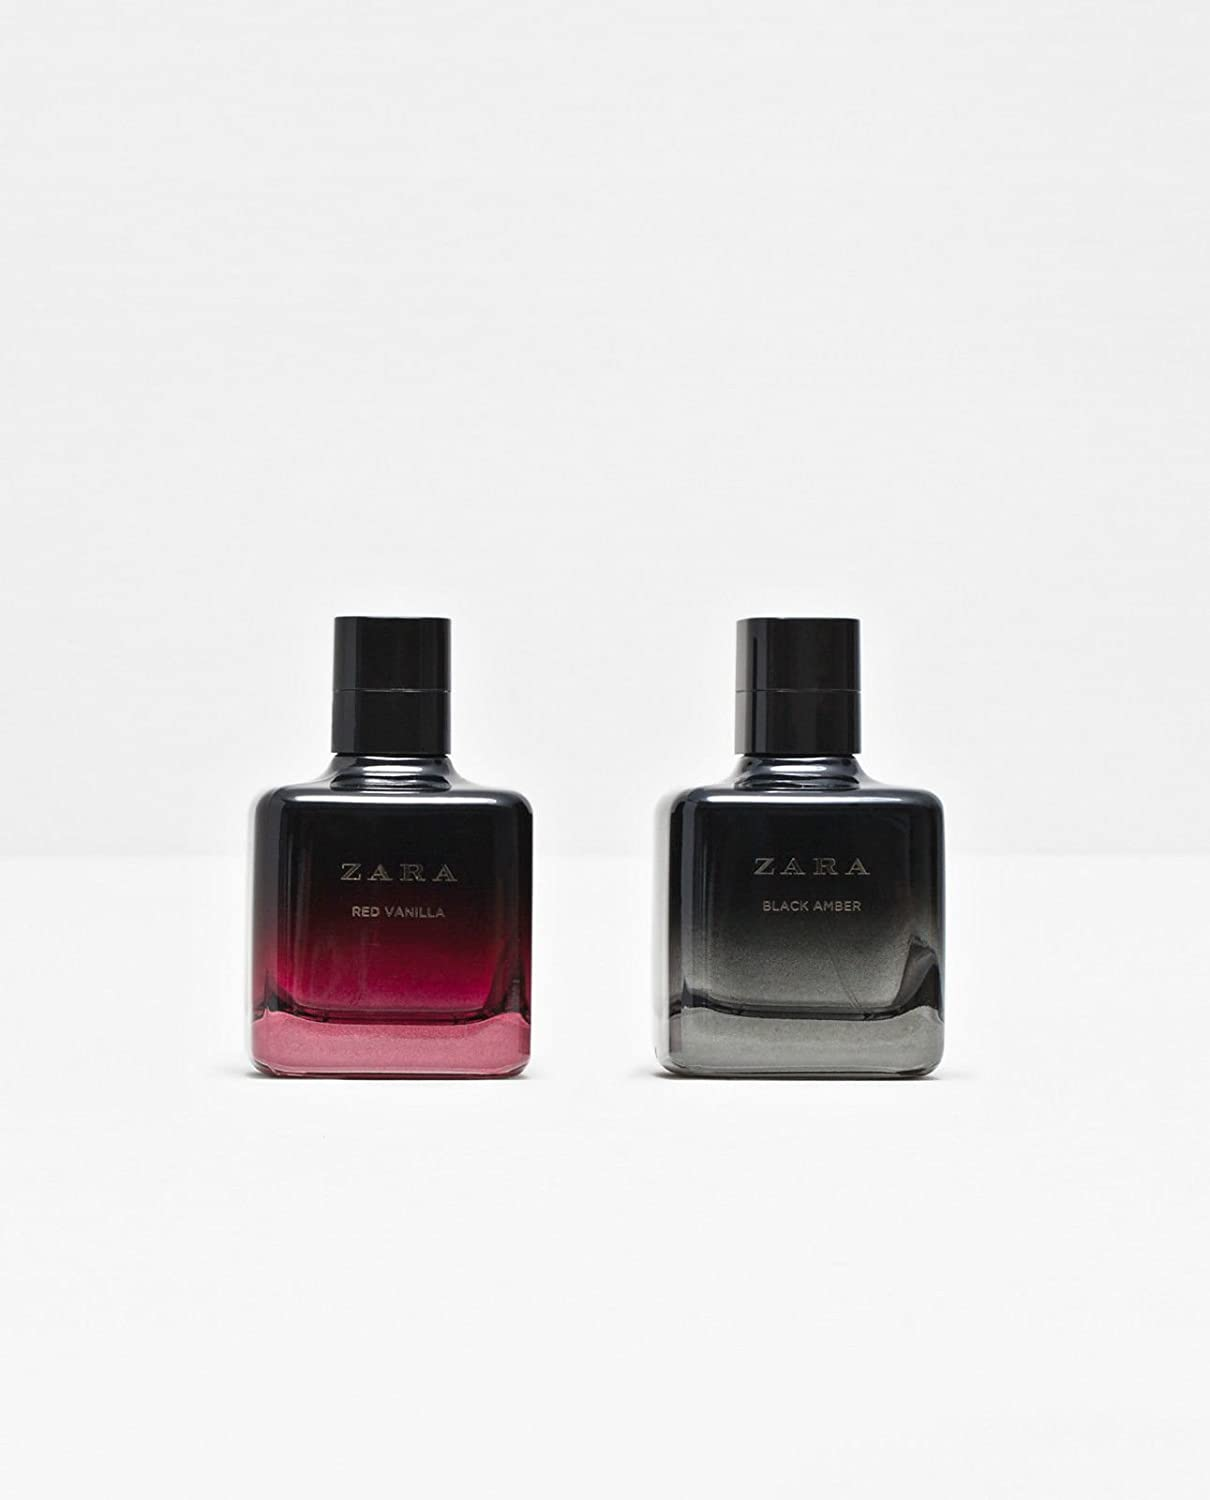 Amazon.com  Zara Two Bottles Women RED Vanilla   Black Amber Set EAU DE  TOILTETTE Spray Fragrance  Home   Kitchen db861a63228b